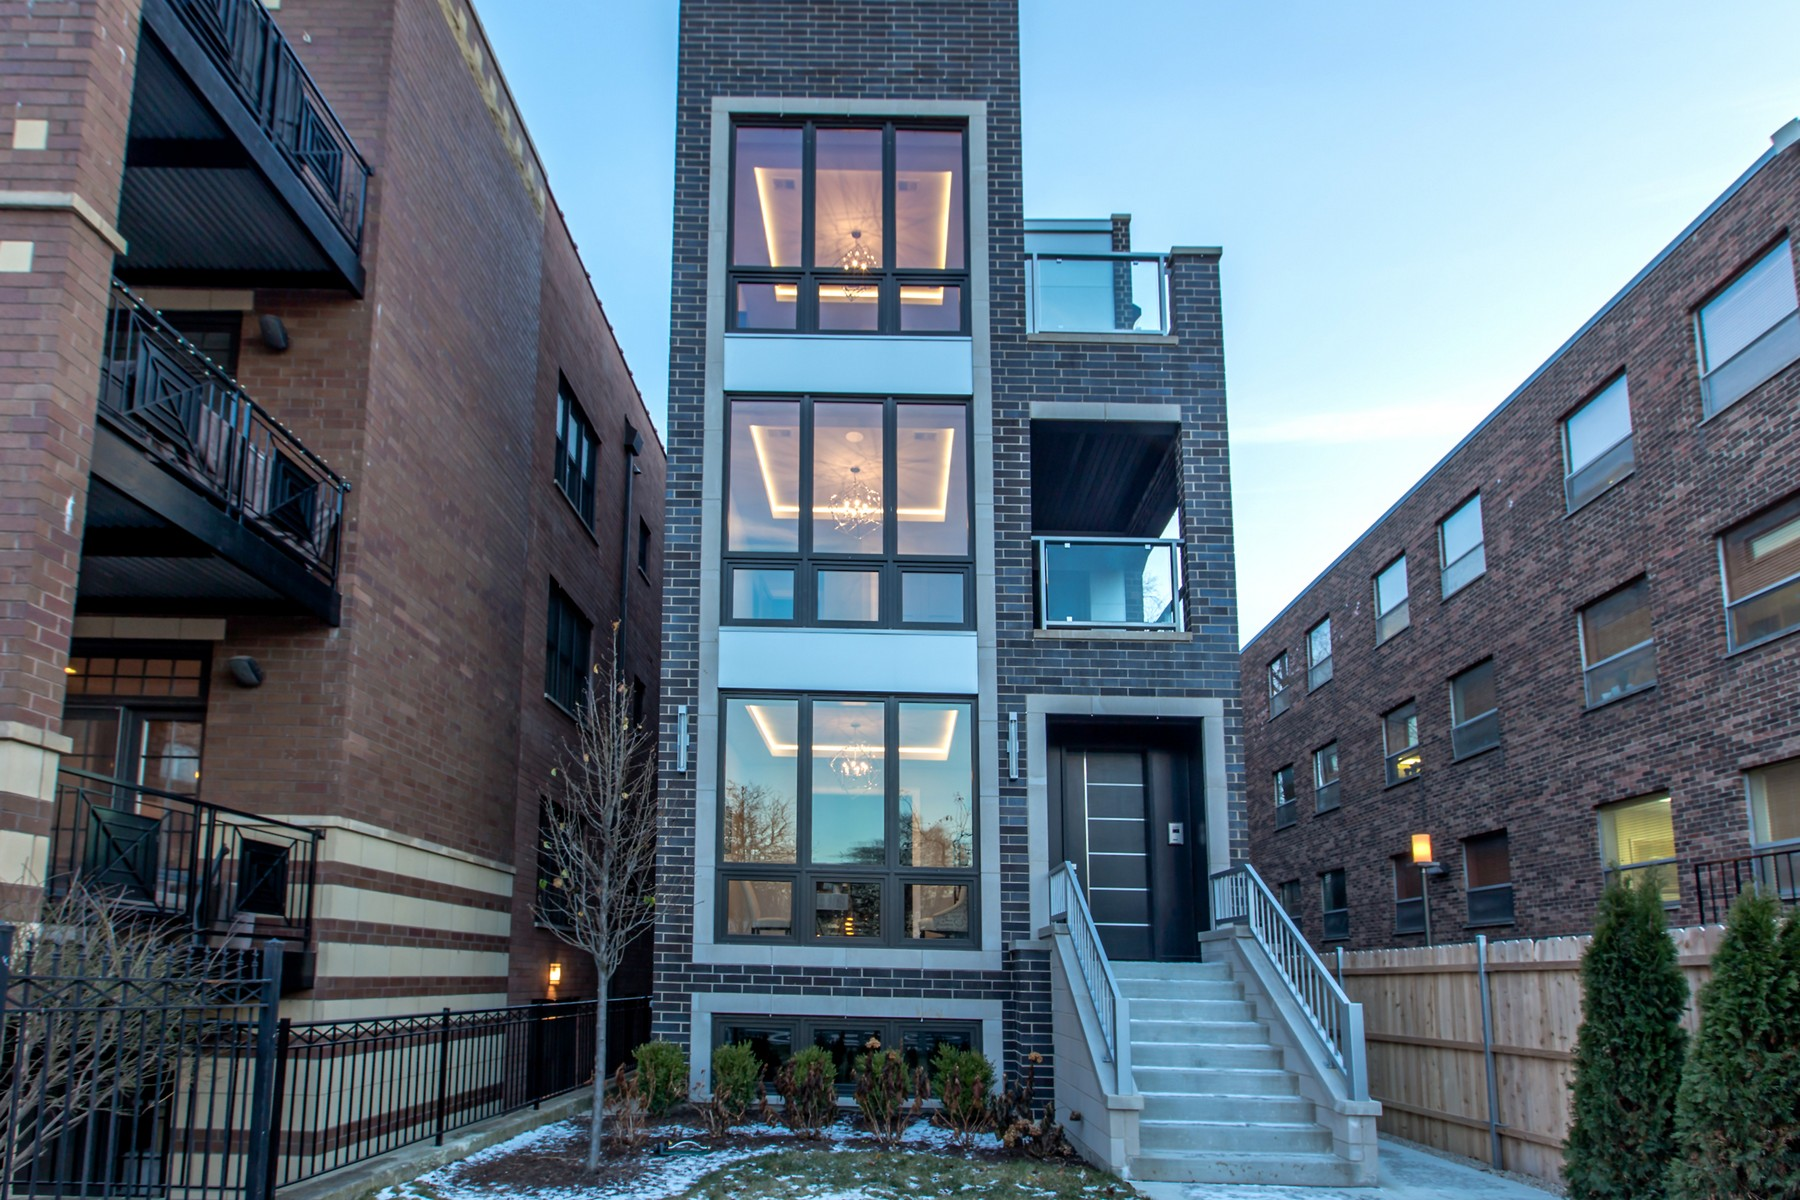 Condominium for Sale at New Construction in Lincoln Park 729 W Diversey Parkway Unit 3, Lincoln Park, Chicago, Illinois, 60614 United States